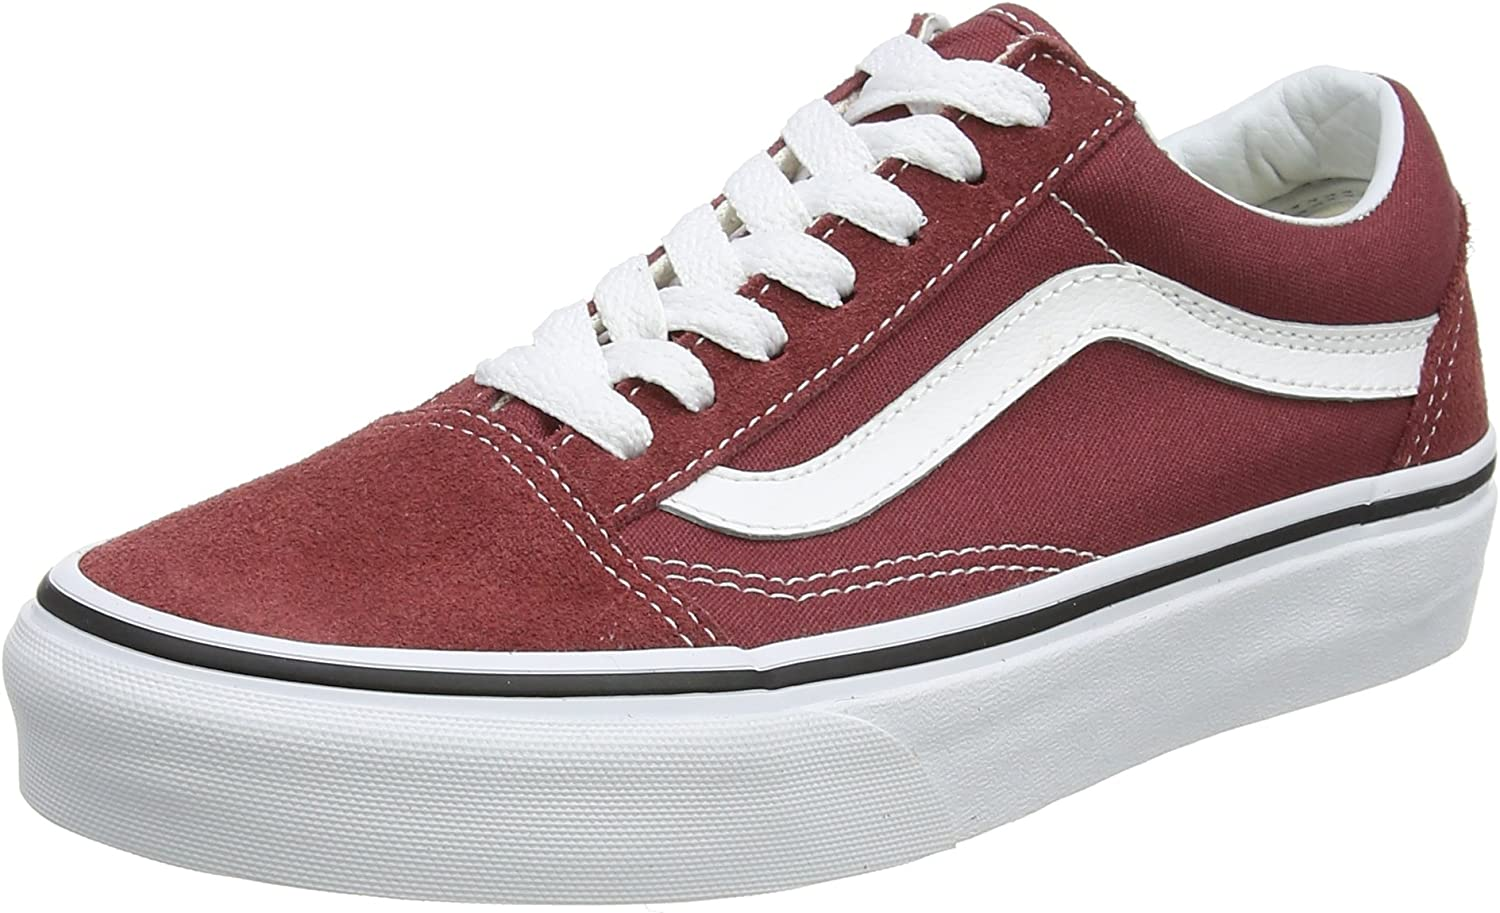 Vans Unisex Adults' Old Skool Trainers, Red (Apple Butter/True White Q9S),